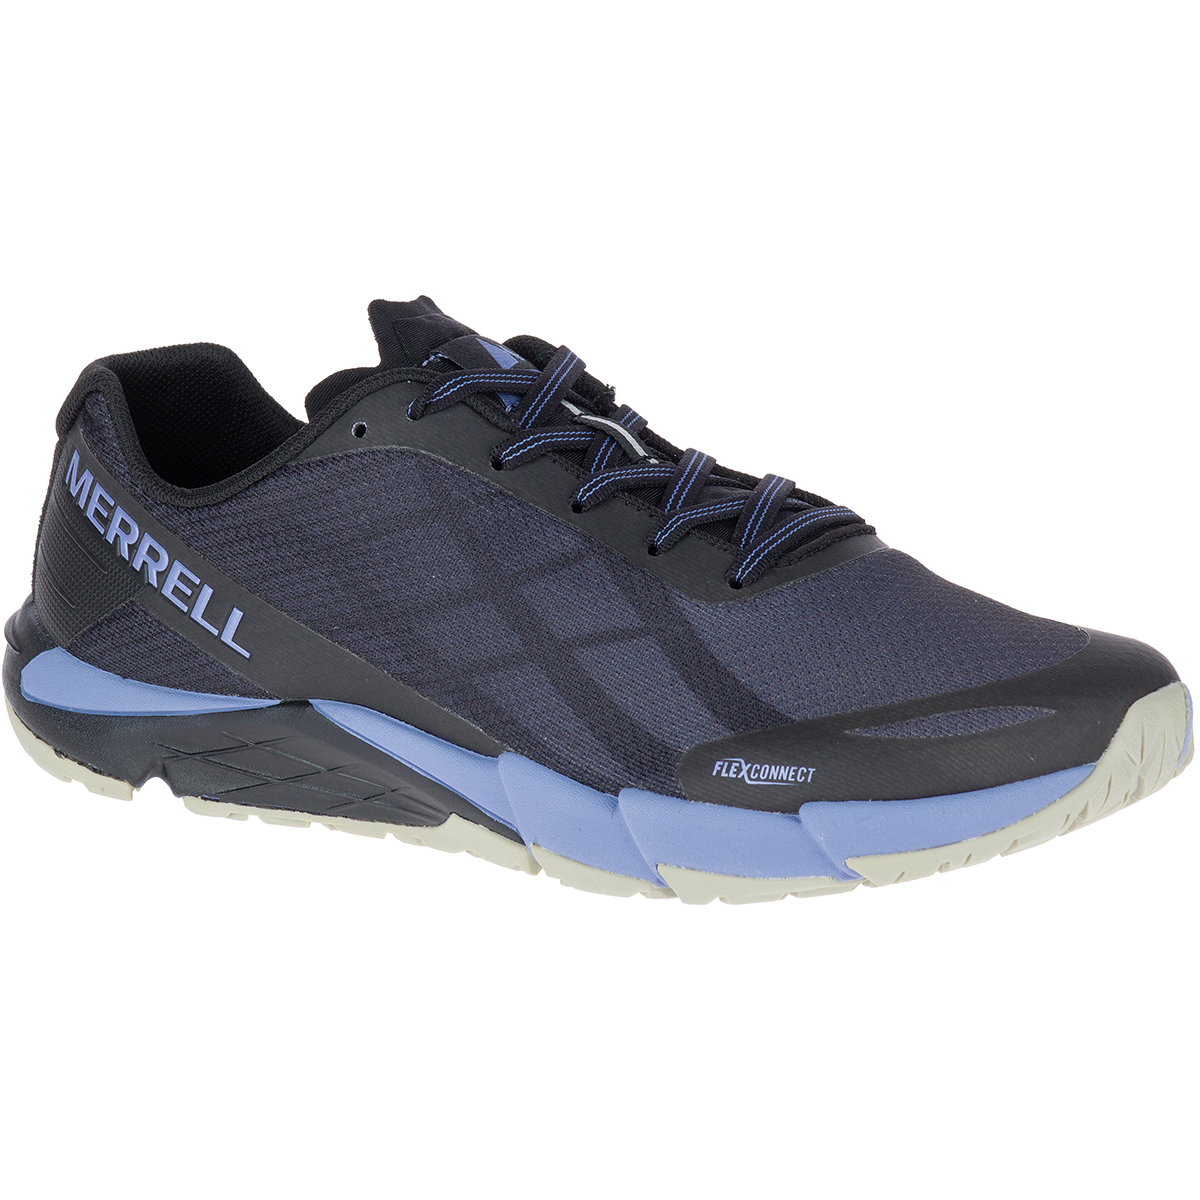 Merrell Women's Bare Access Flex Trail Running Shoes - Black, 10